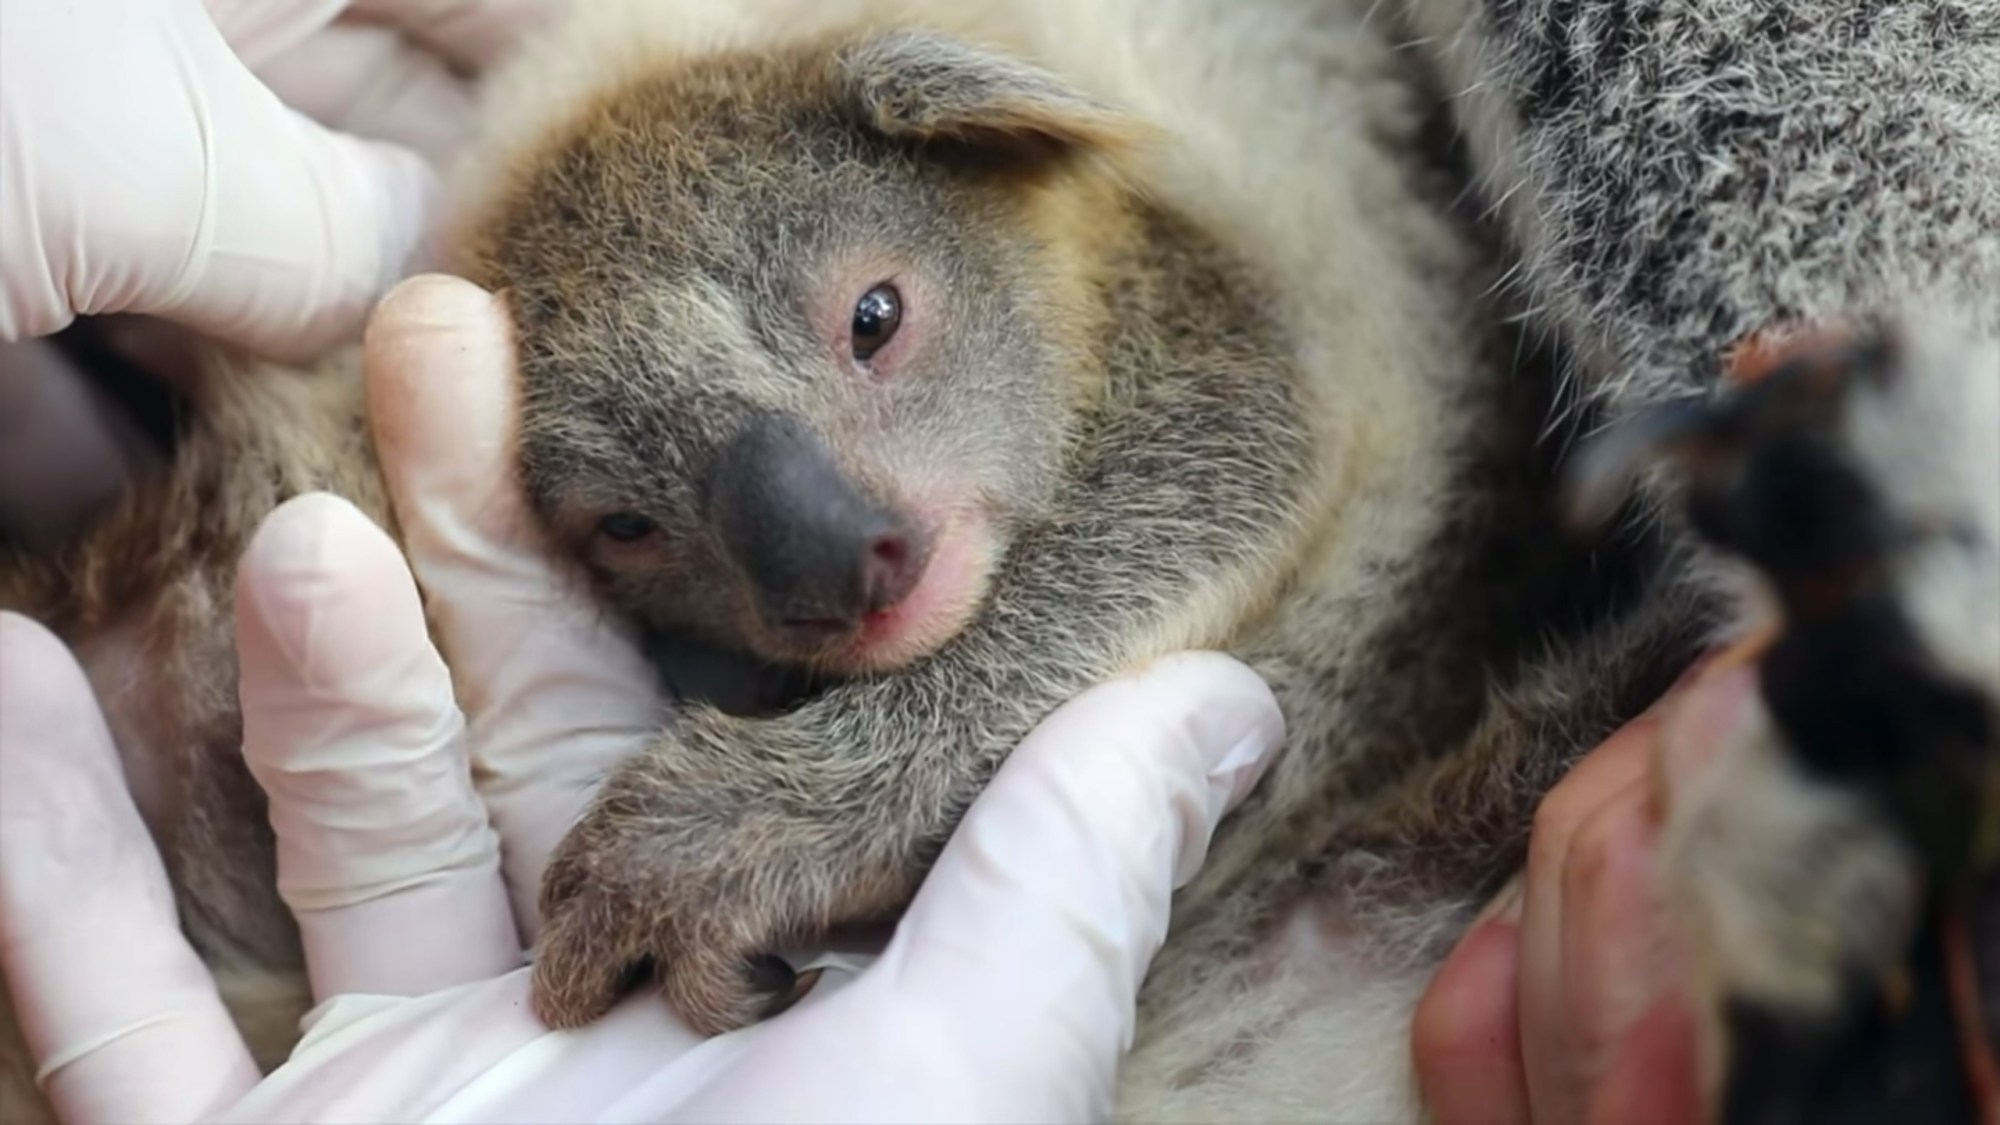 A koala is seen in a photo posted to the Australian Reptile Park's Facebook page in May 2020.